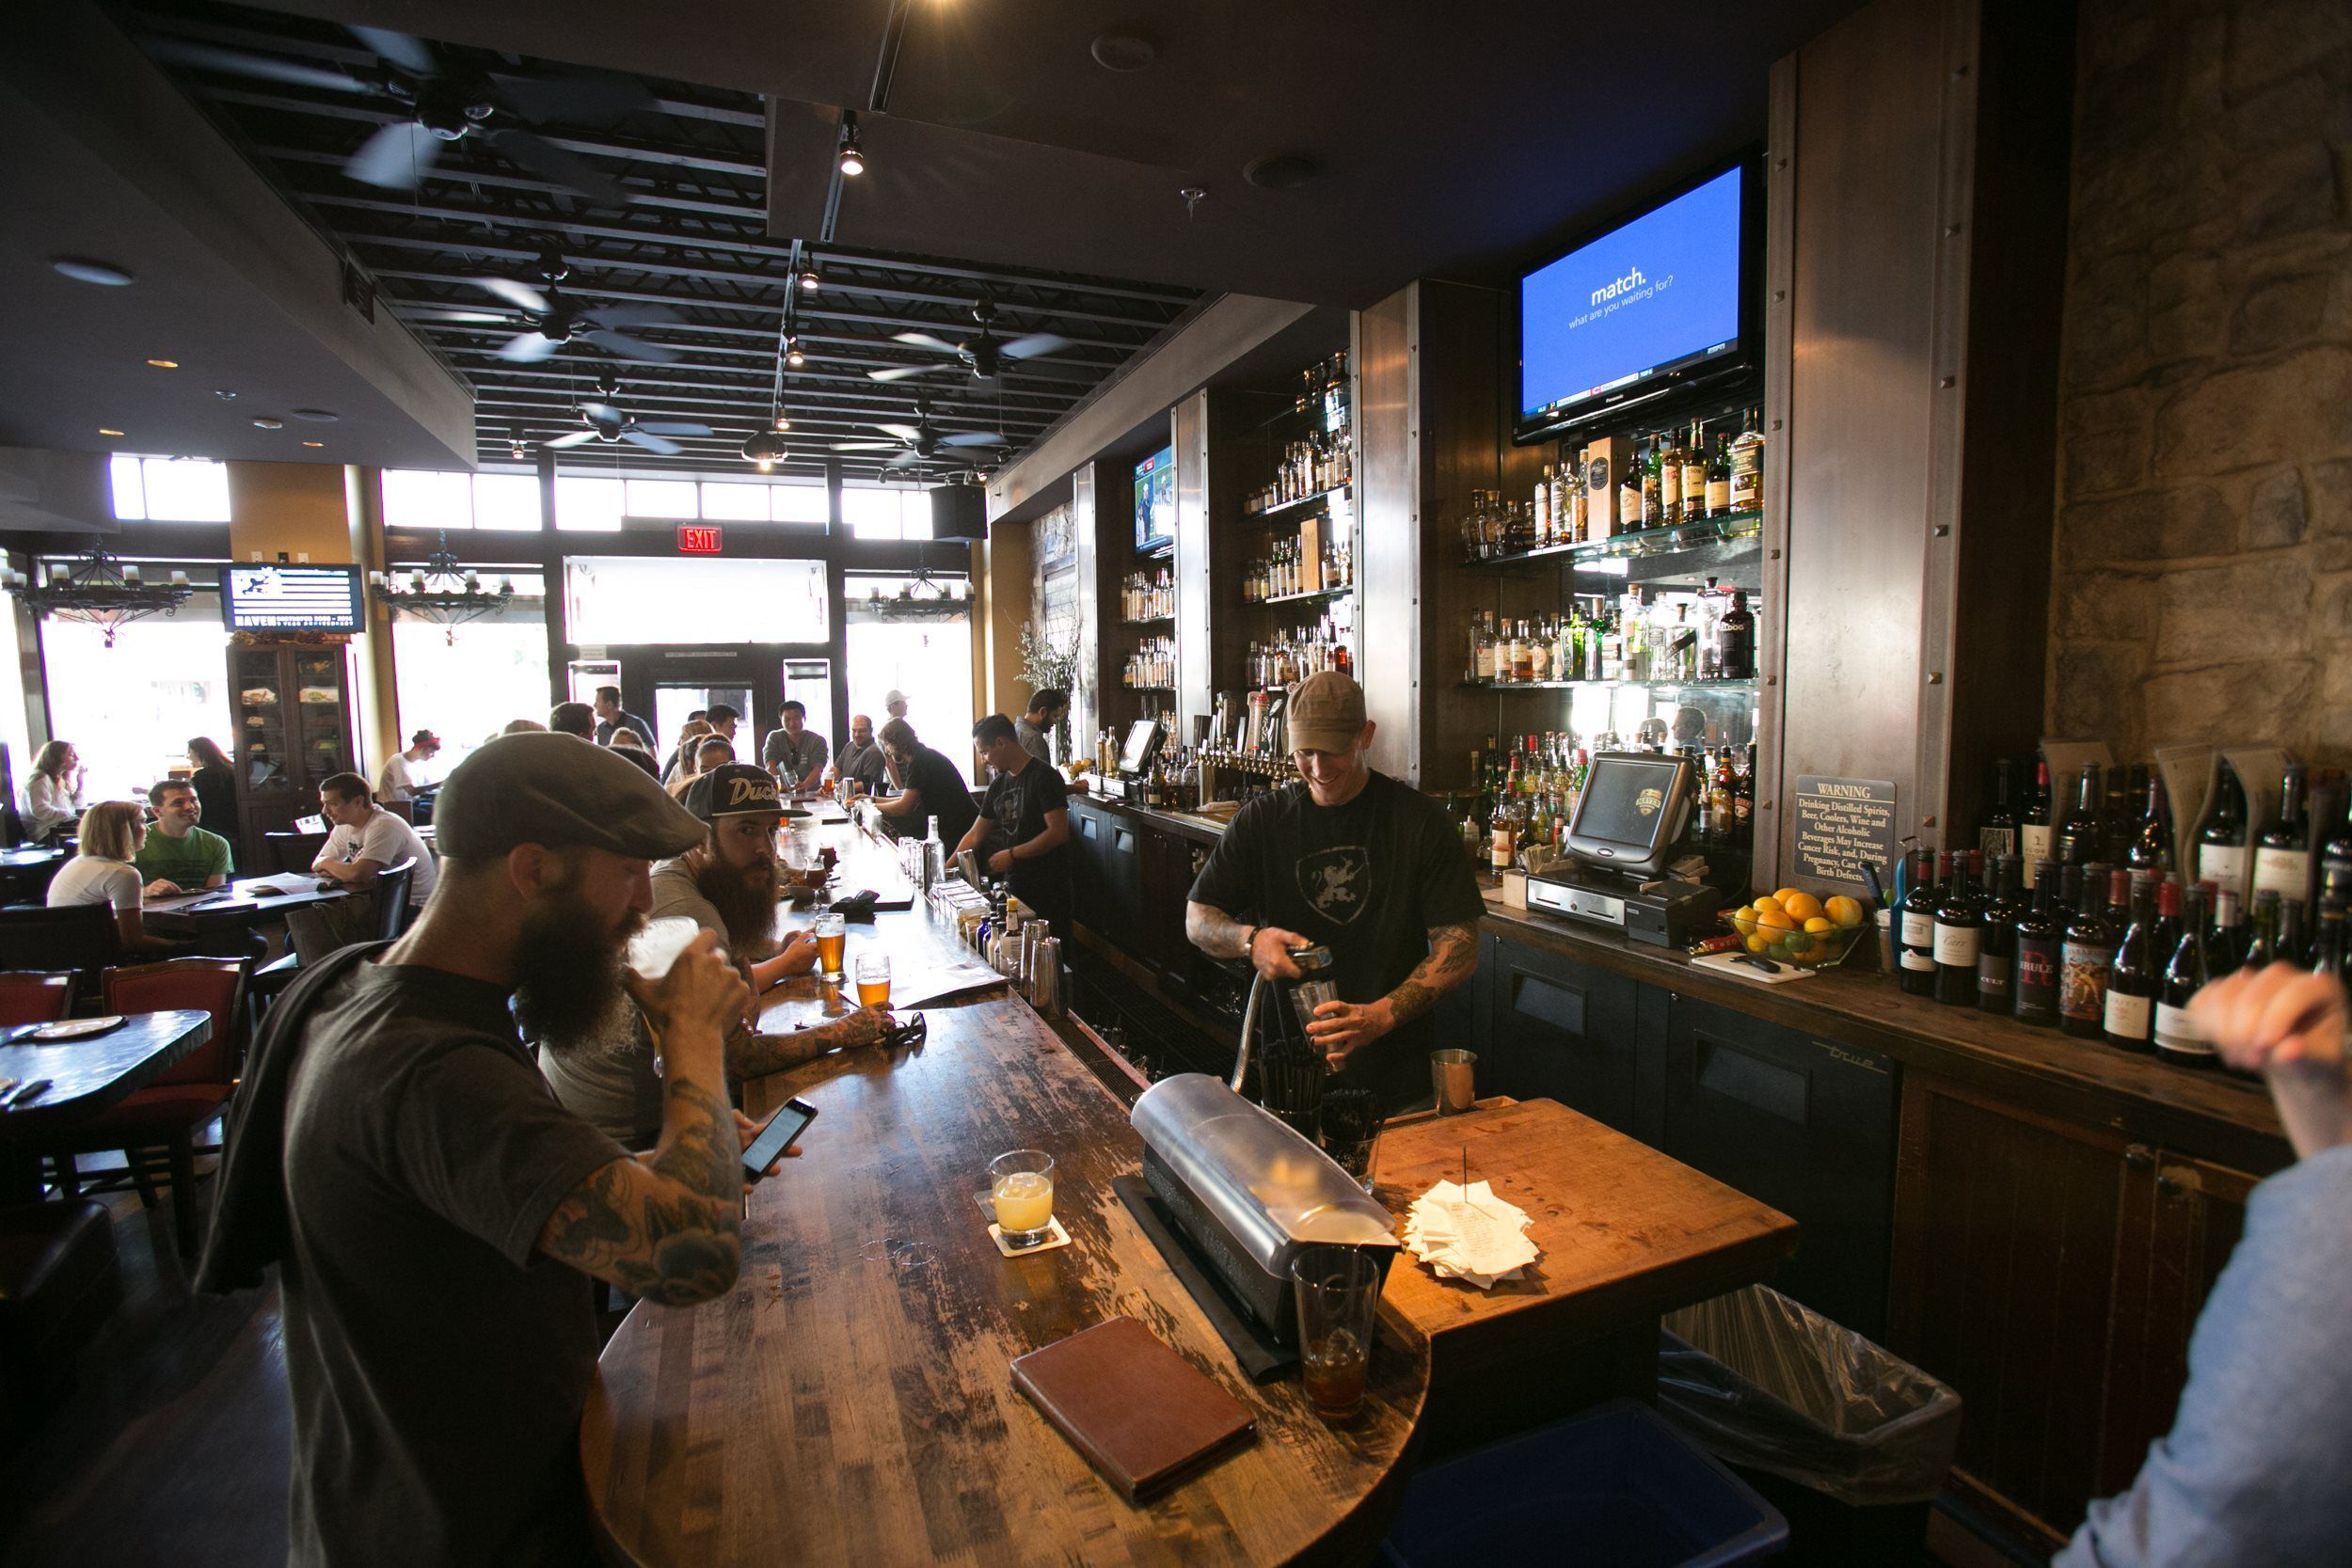 Haven Gastropub Is A Bustling Bar With Rotating Selection Of Beer Sophisticated American Pub Fare Amid Modern Decor Restaurant Bar Orange City Kitchen Bar